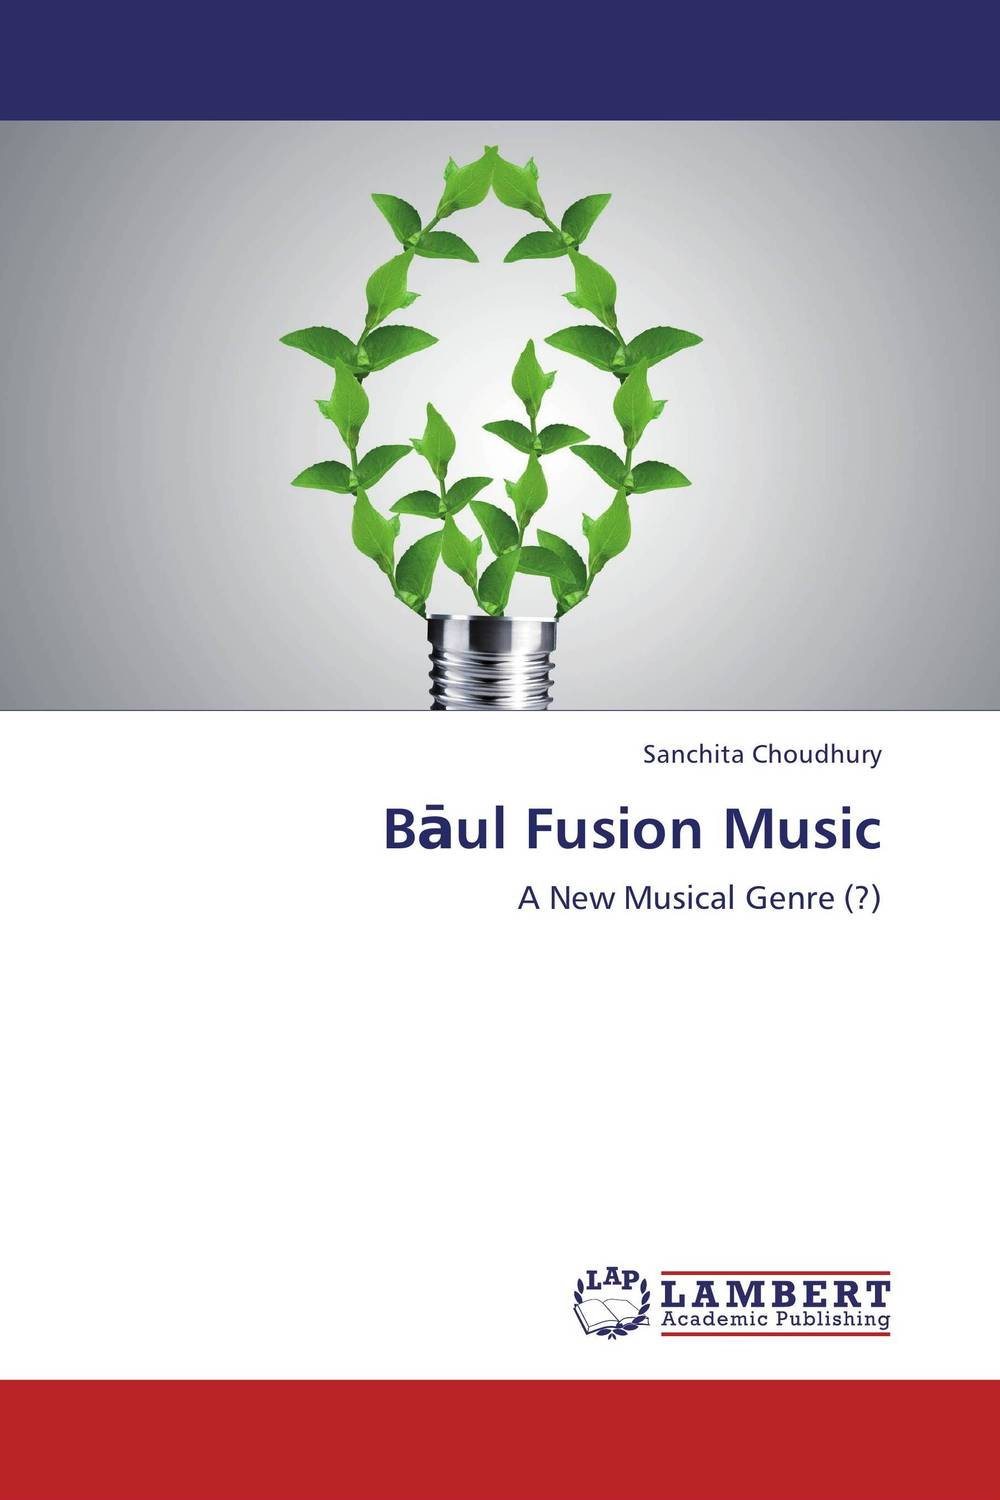 Baul Fusion Music metadiscourse and genre learning